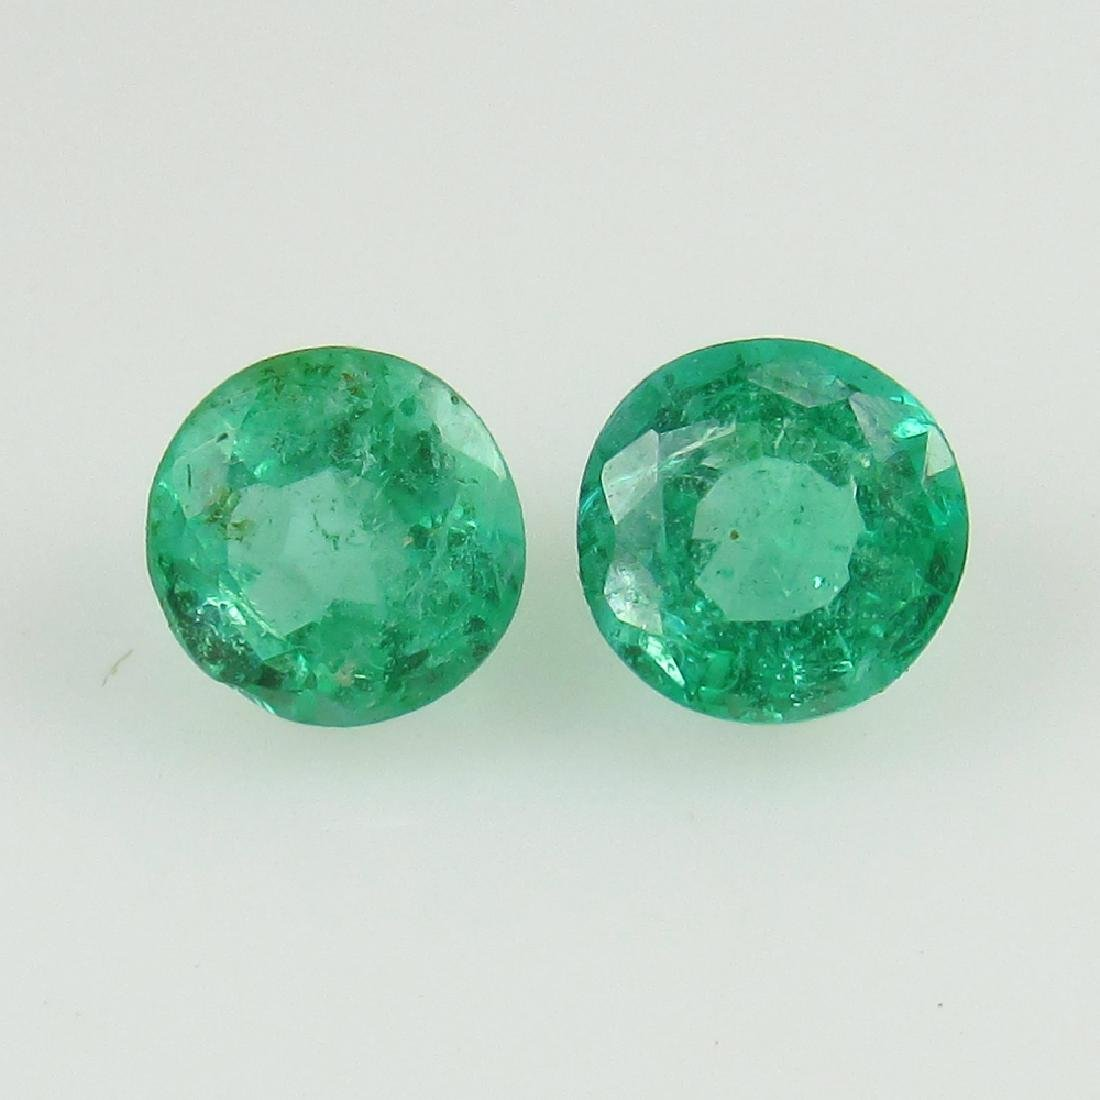 0.58 Ct Genuine Loose Zambian Emerald 4.2 mm Round Pair